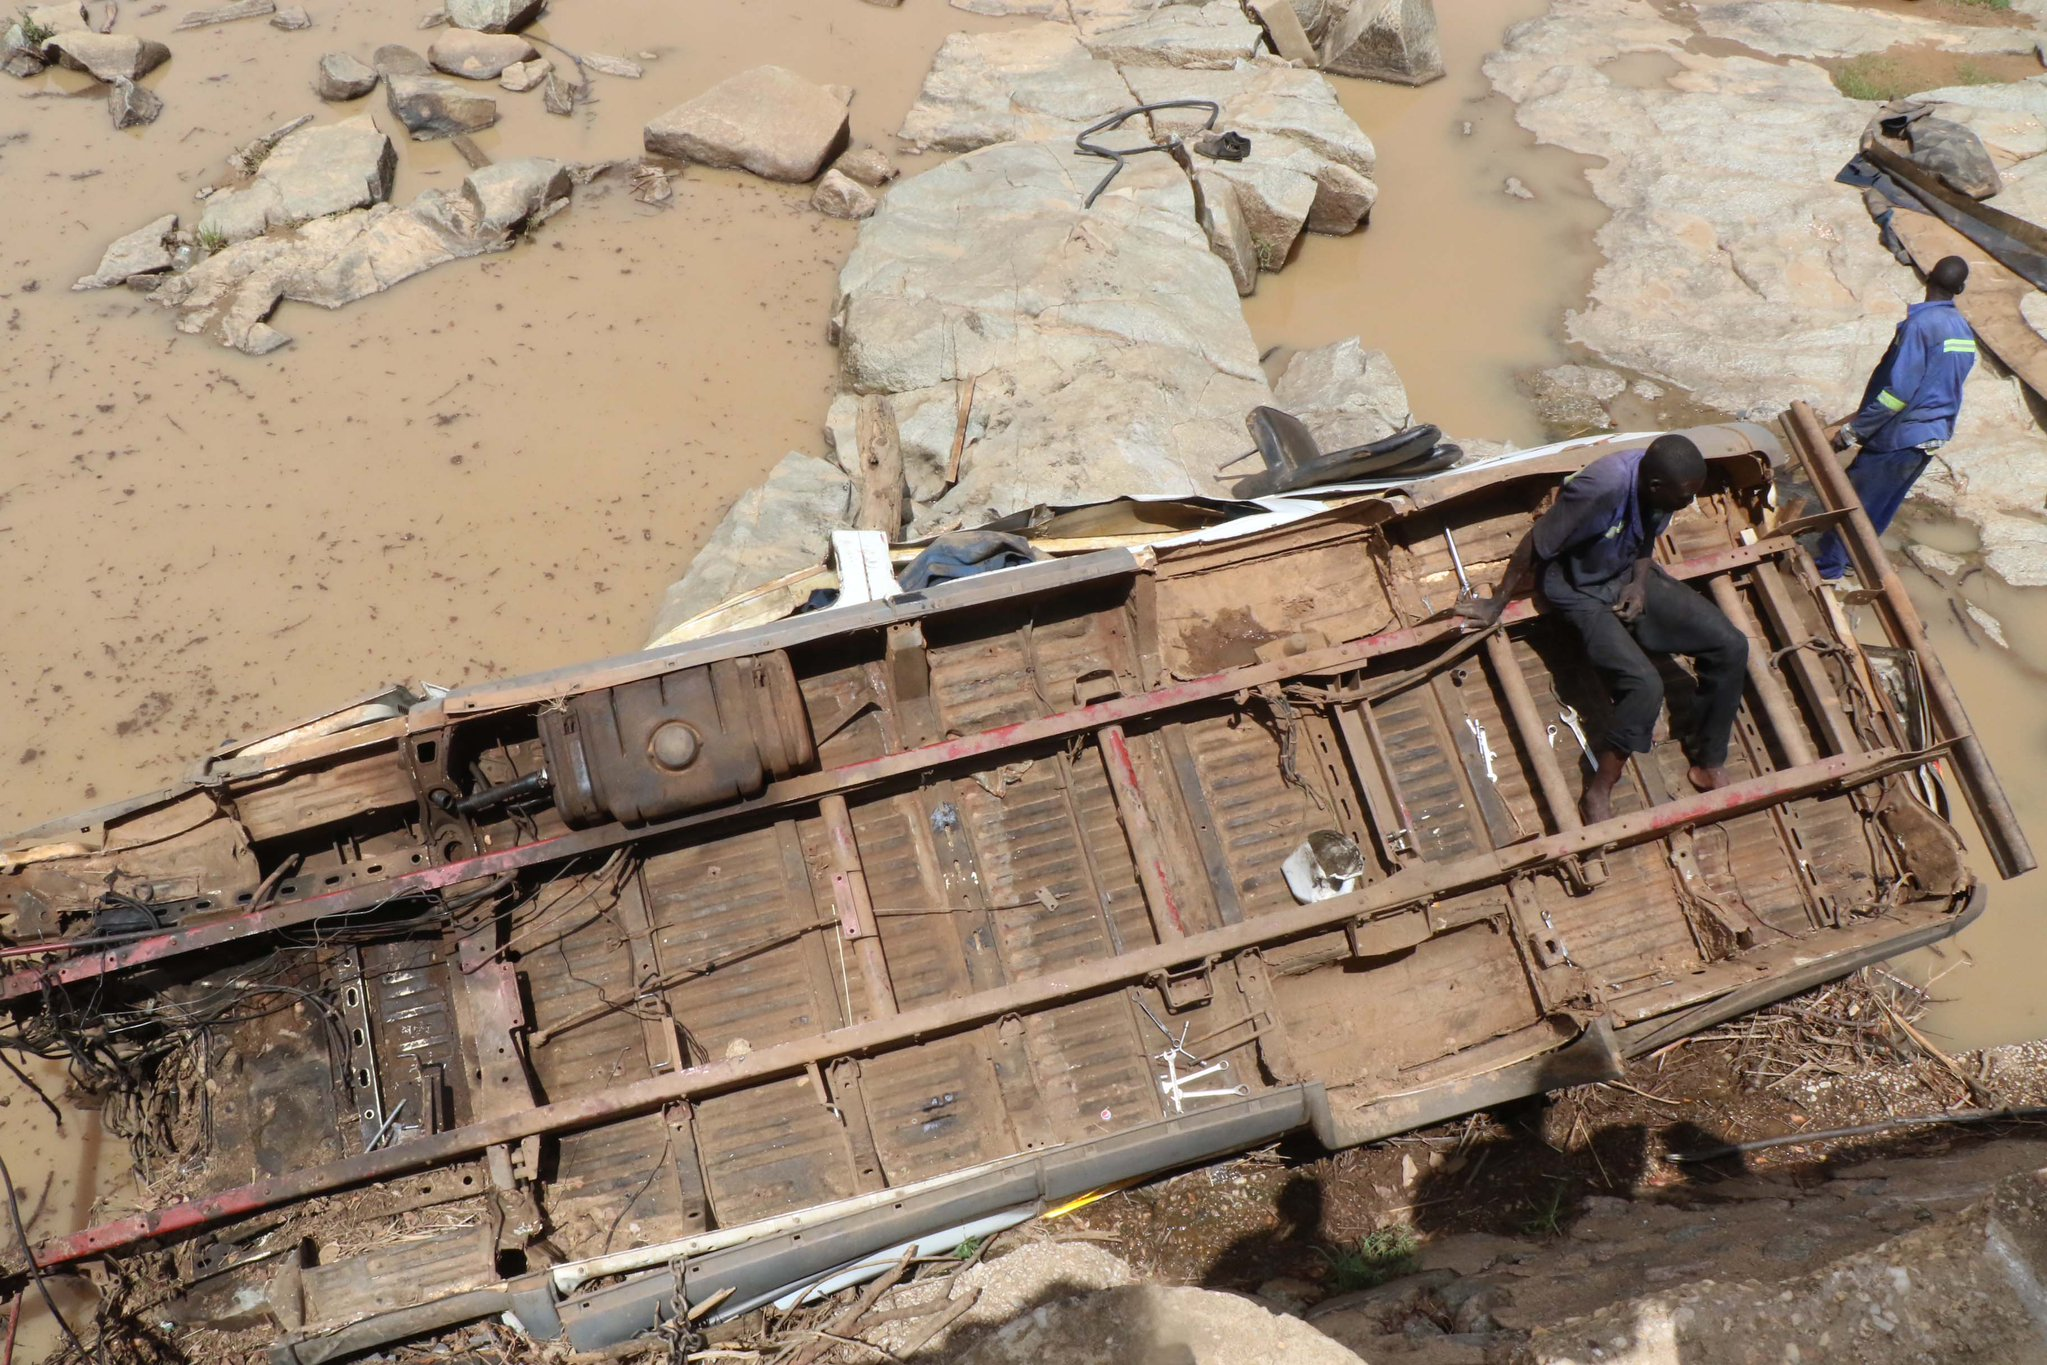 16 Survive As Kombi plunges into river